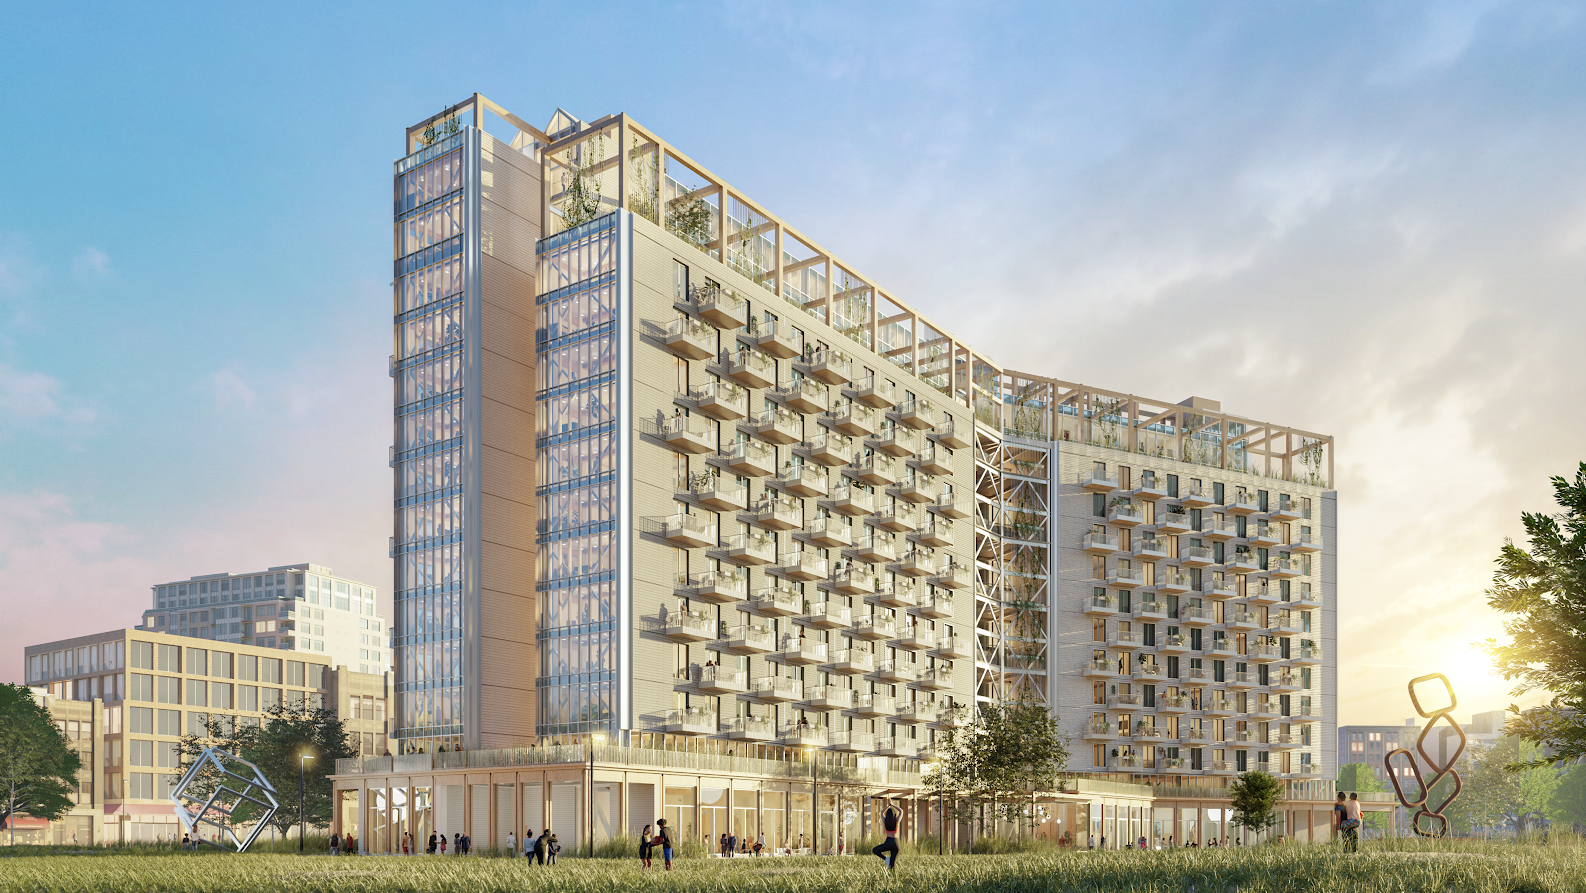 A rendering of a mass timber building